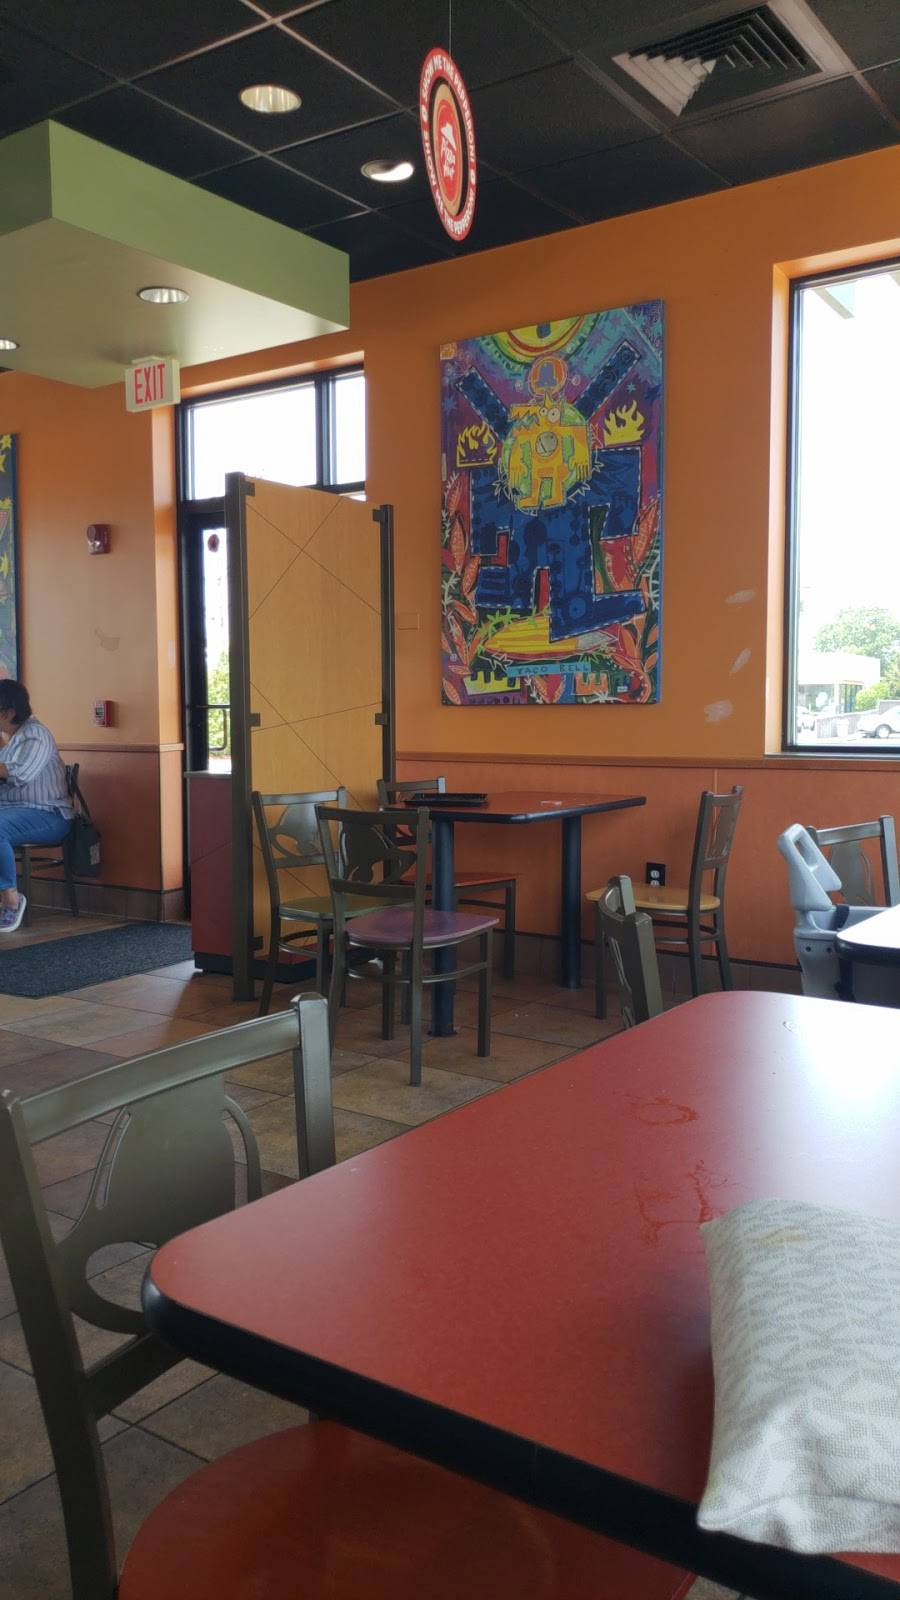 Taco Bell   meal takeaway   311 Montauk Hwy, Lindenhurst, NY 11757, USA   6312266795 OR +1 631-226-6795